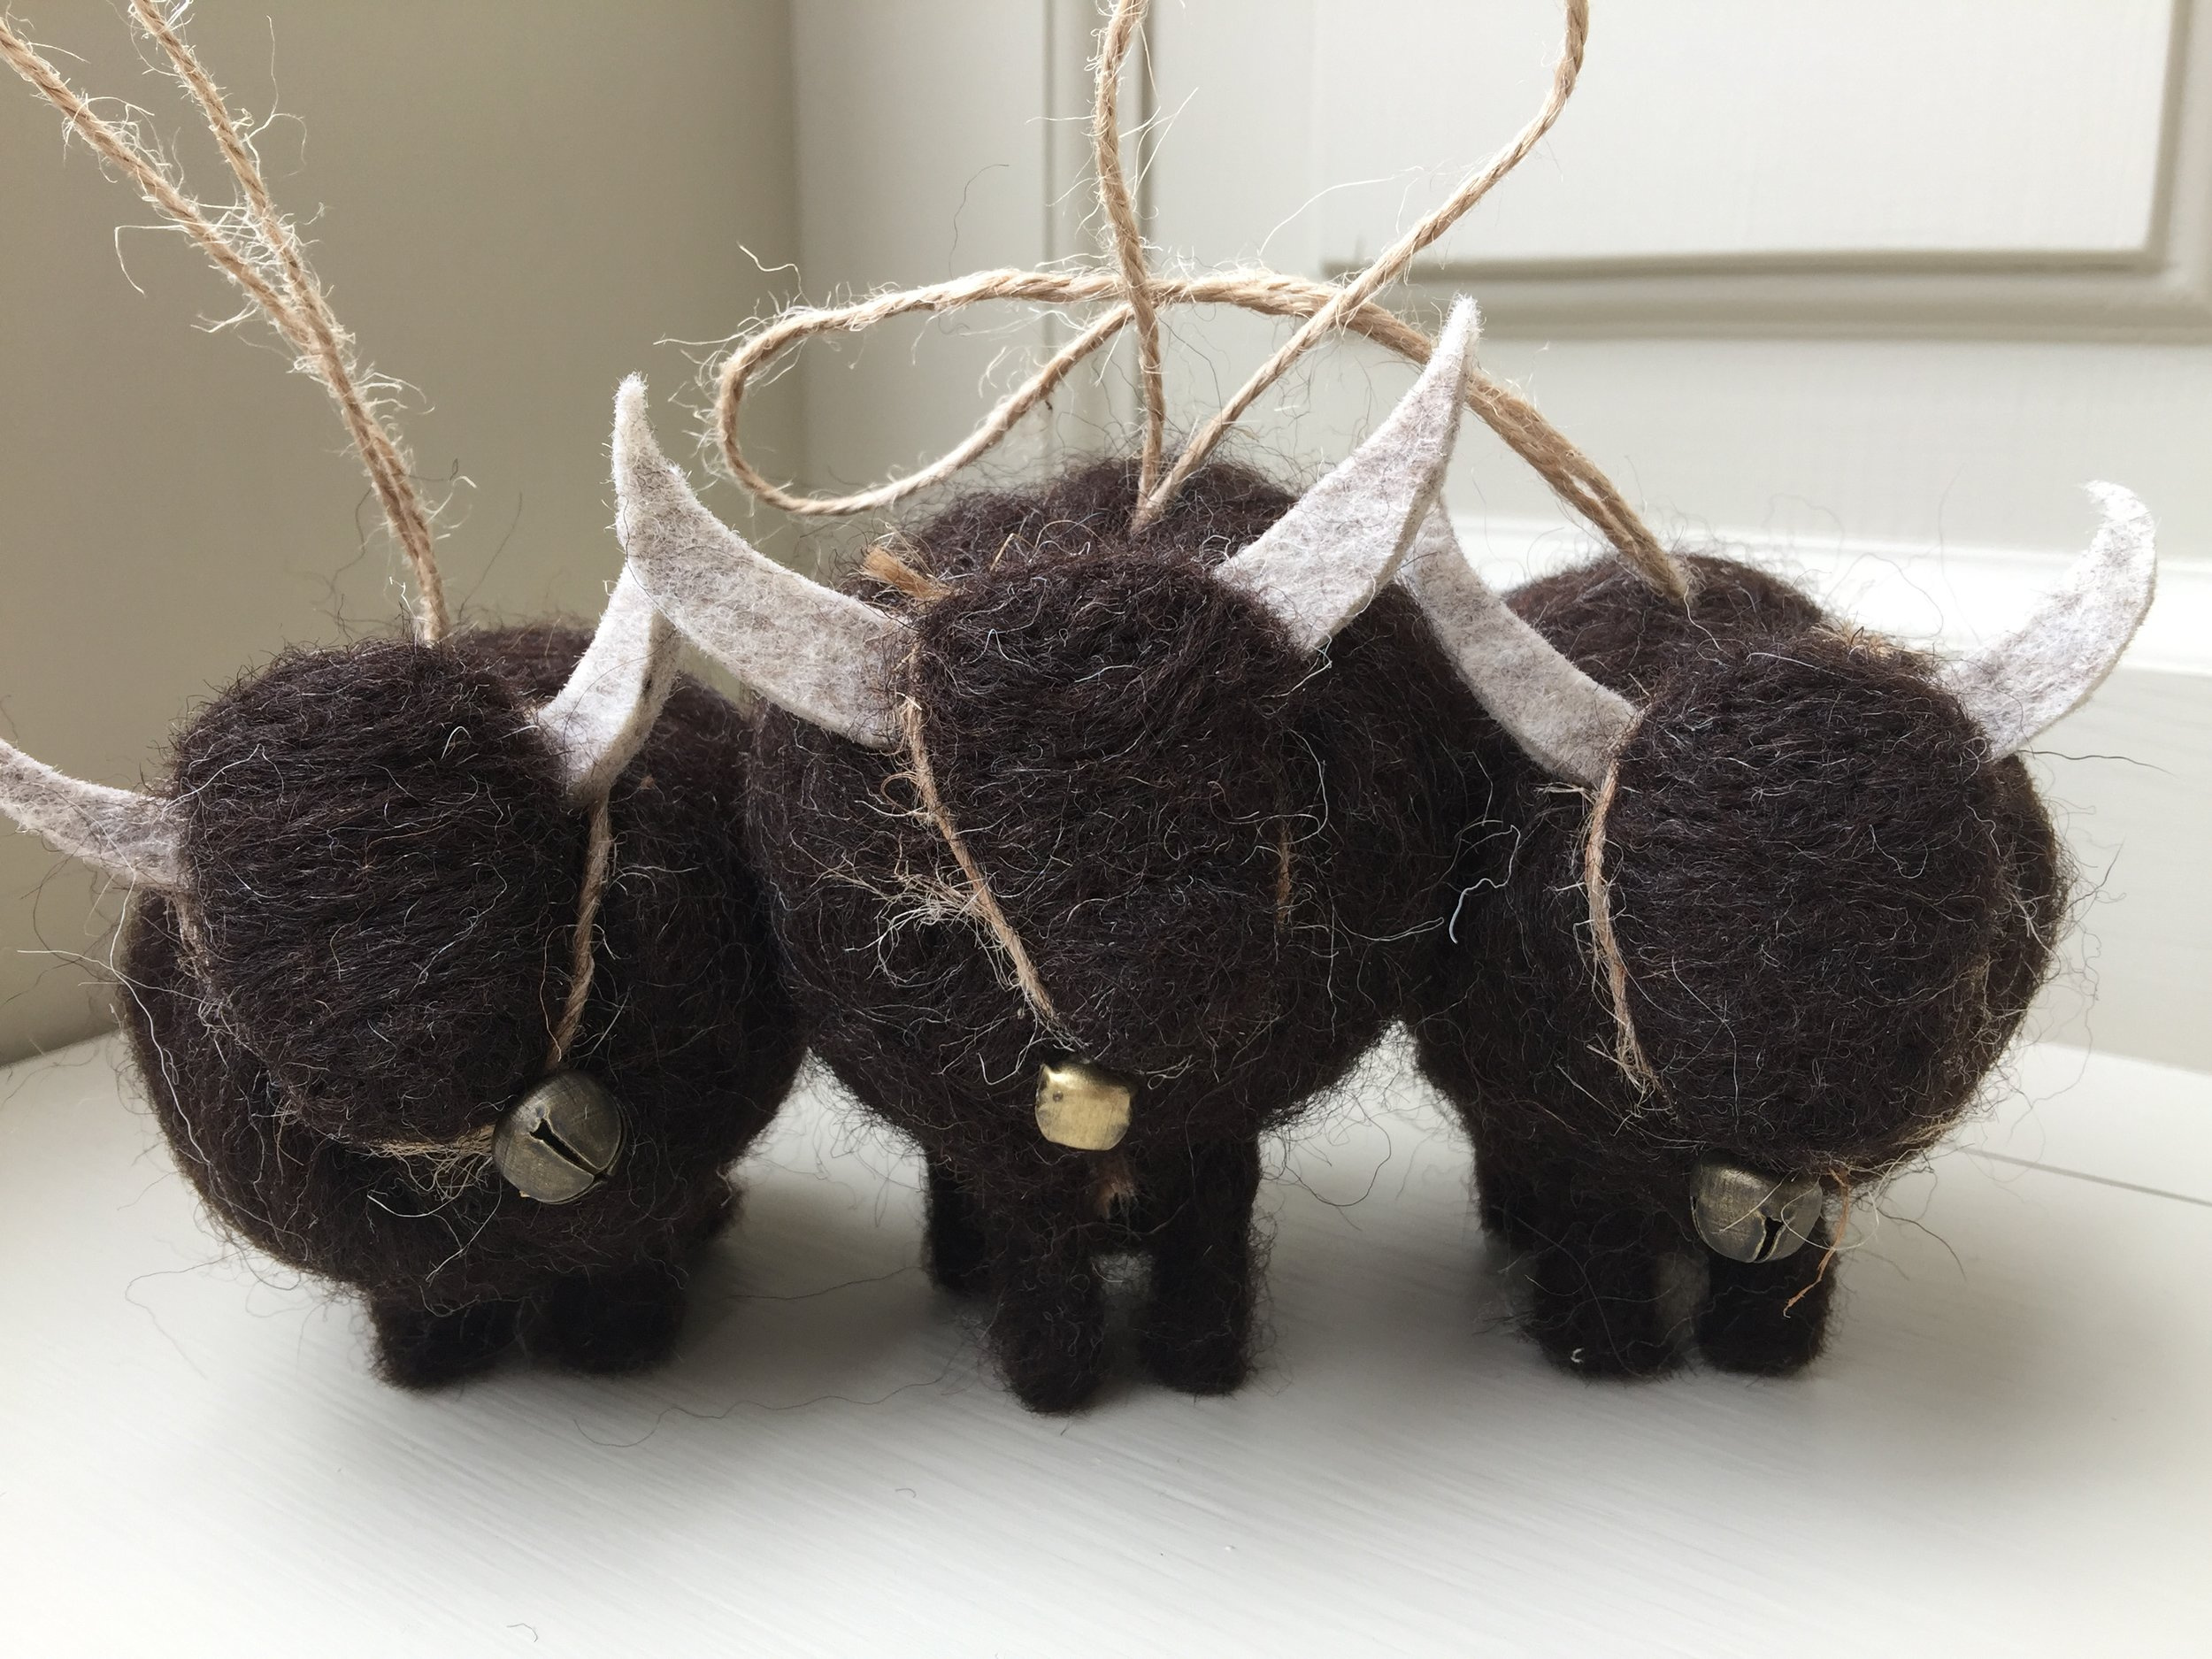 Needle felted animals  - these highland cows are individually handmade & completely unique   I make a huge variety of miniature felted animals : sheep, cows, bears,mice,dogs, cats, etc. I personalised each one as I see fit - I happily do commissions too, so email me should you have any special requests.  Sizes do vary, depending on type of animal.   Each creature is lovingly created using natural British sheep fleece  .